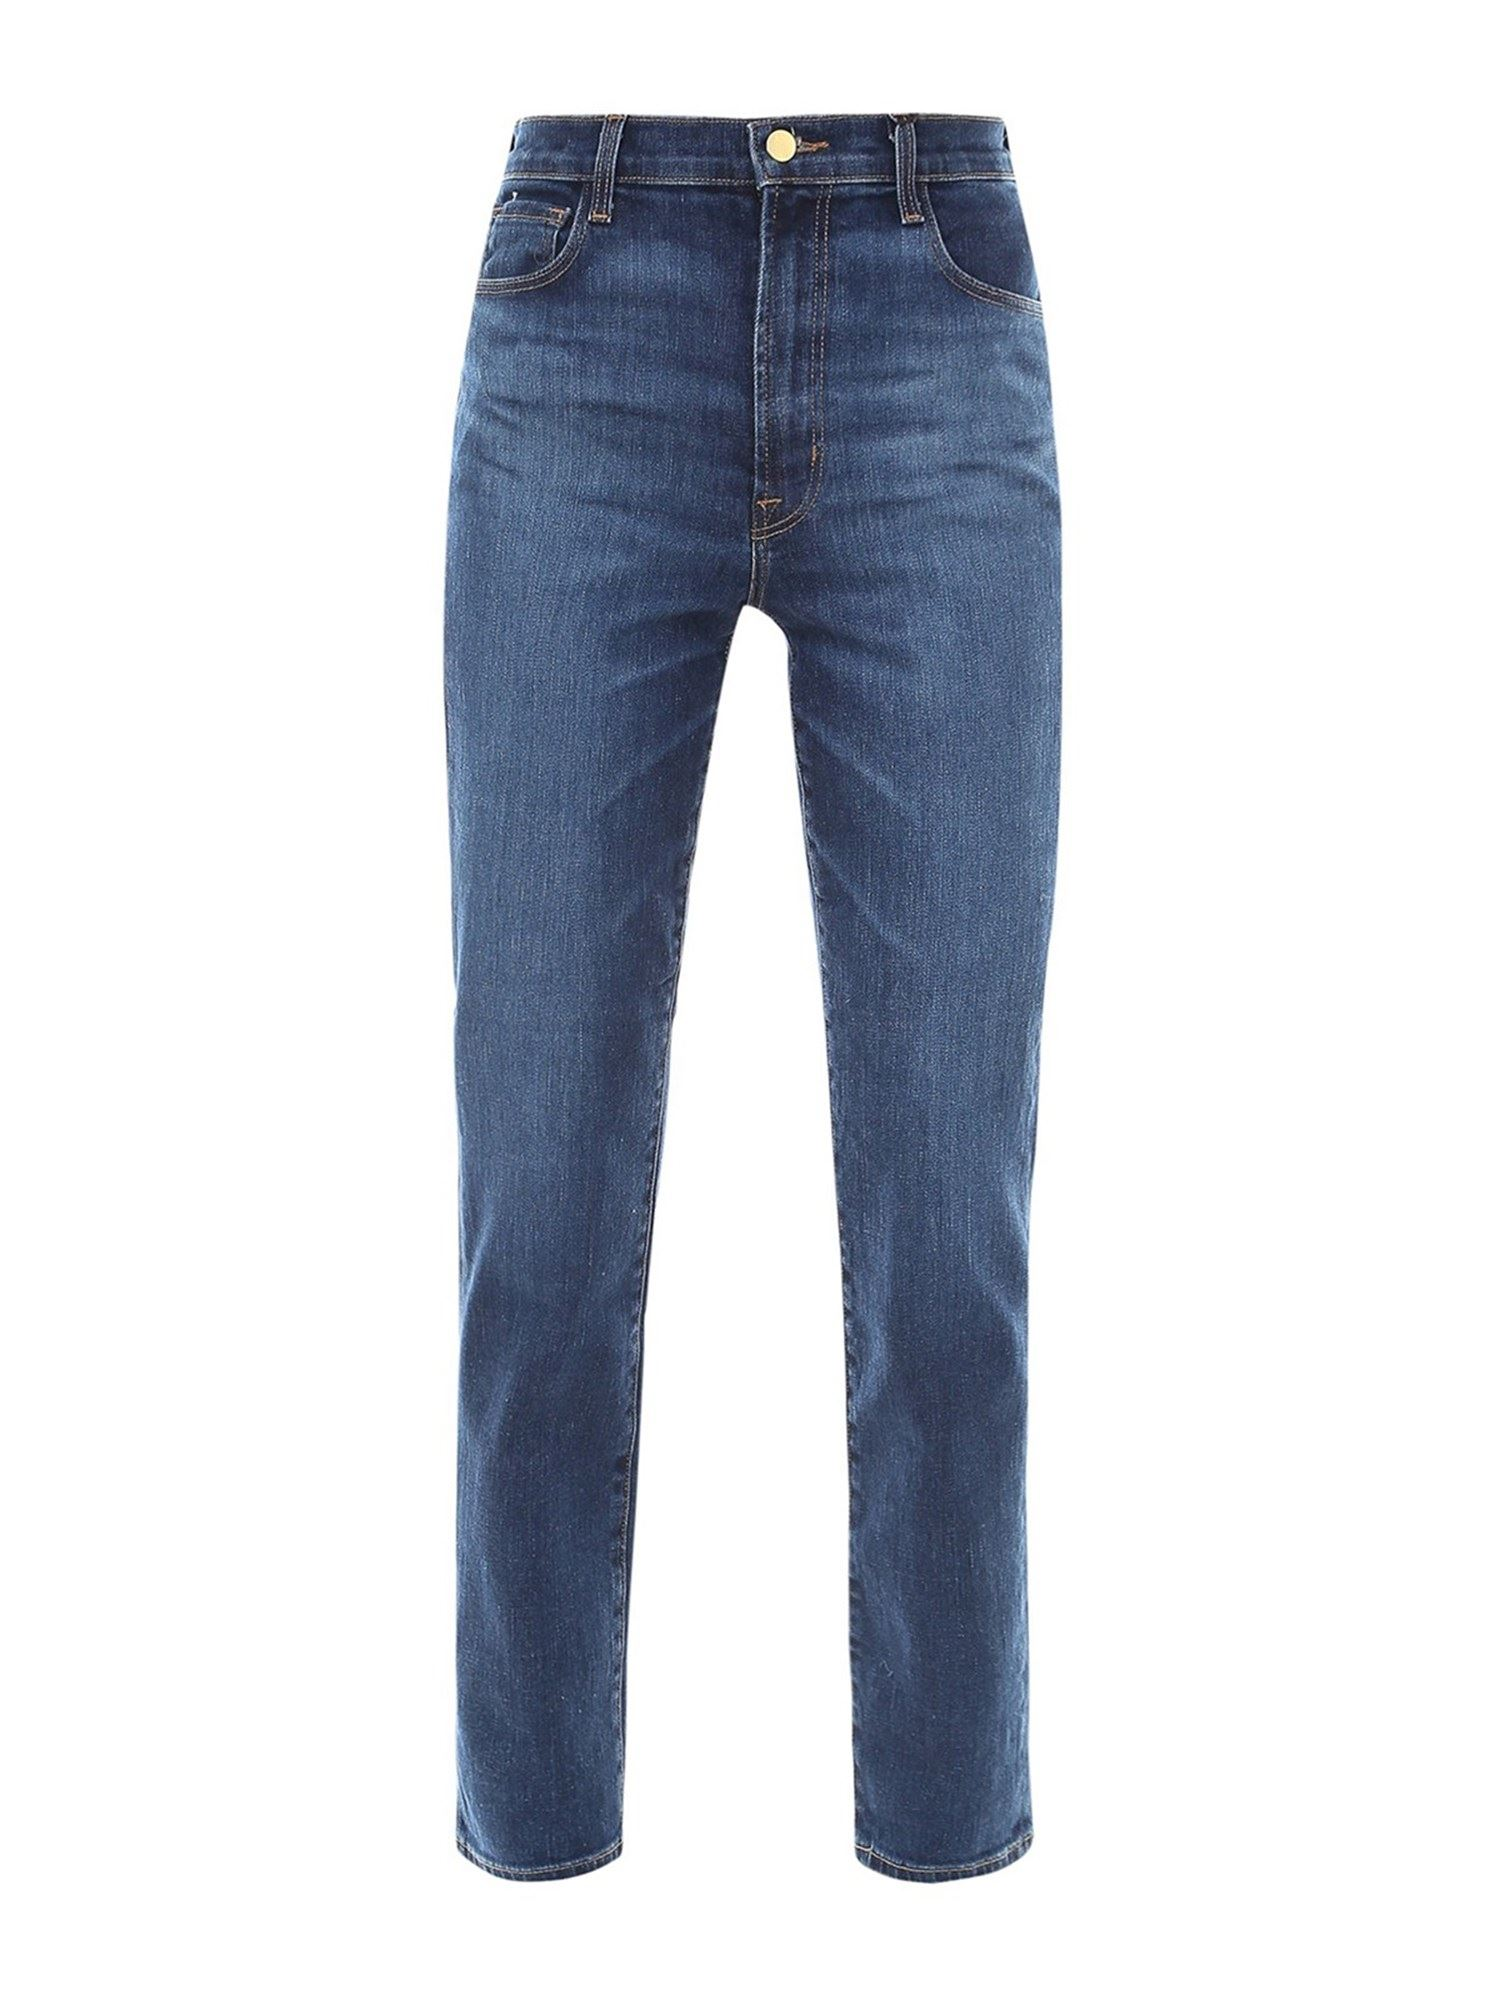 J Brand HIGH RISE JEANS IN BLUE